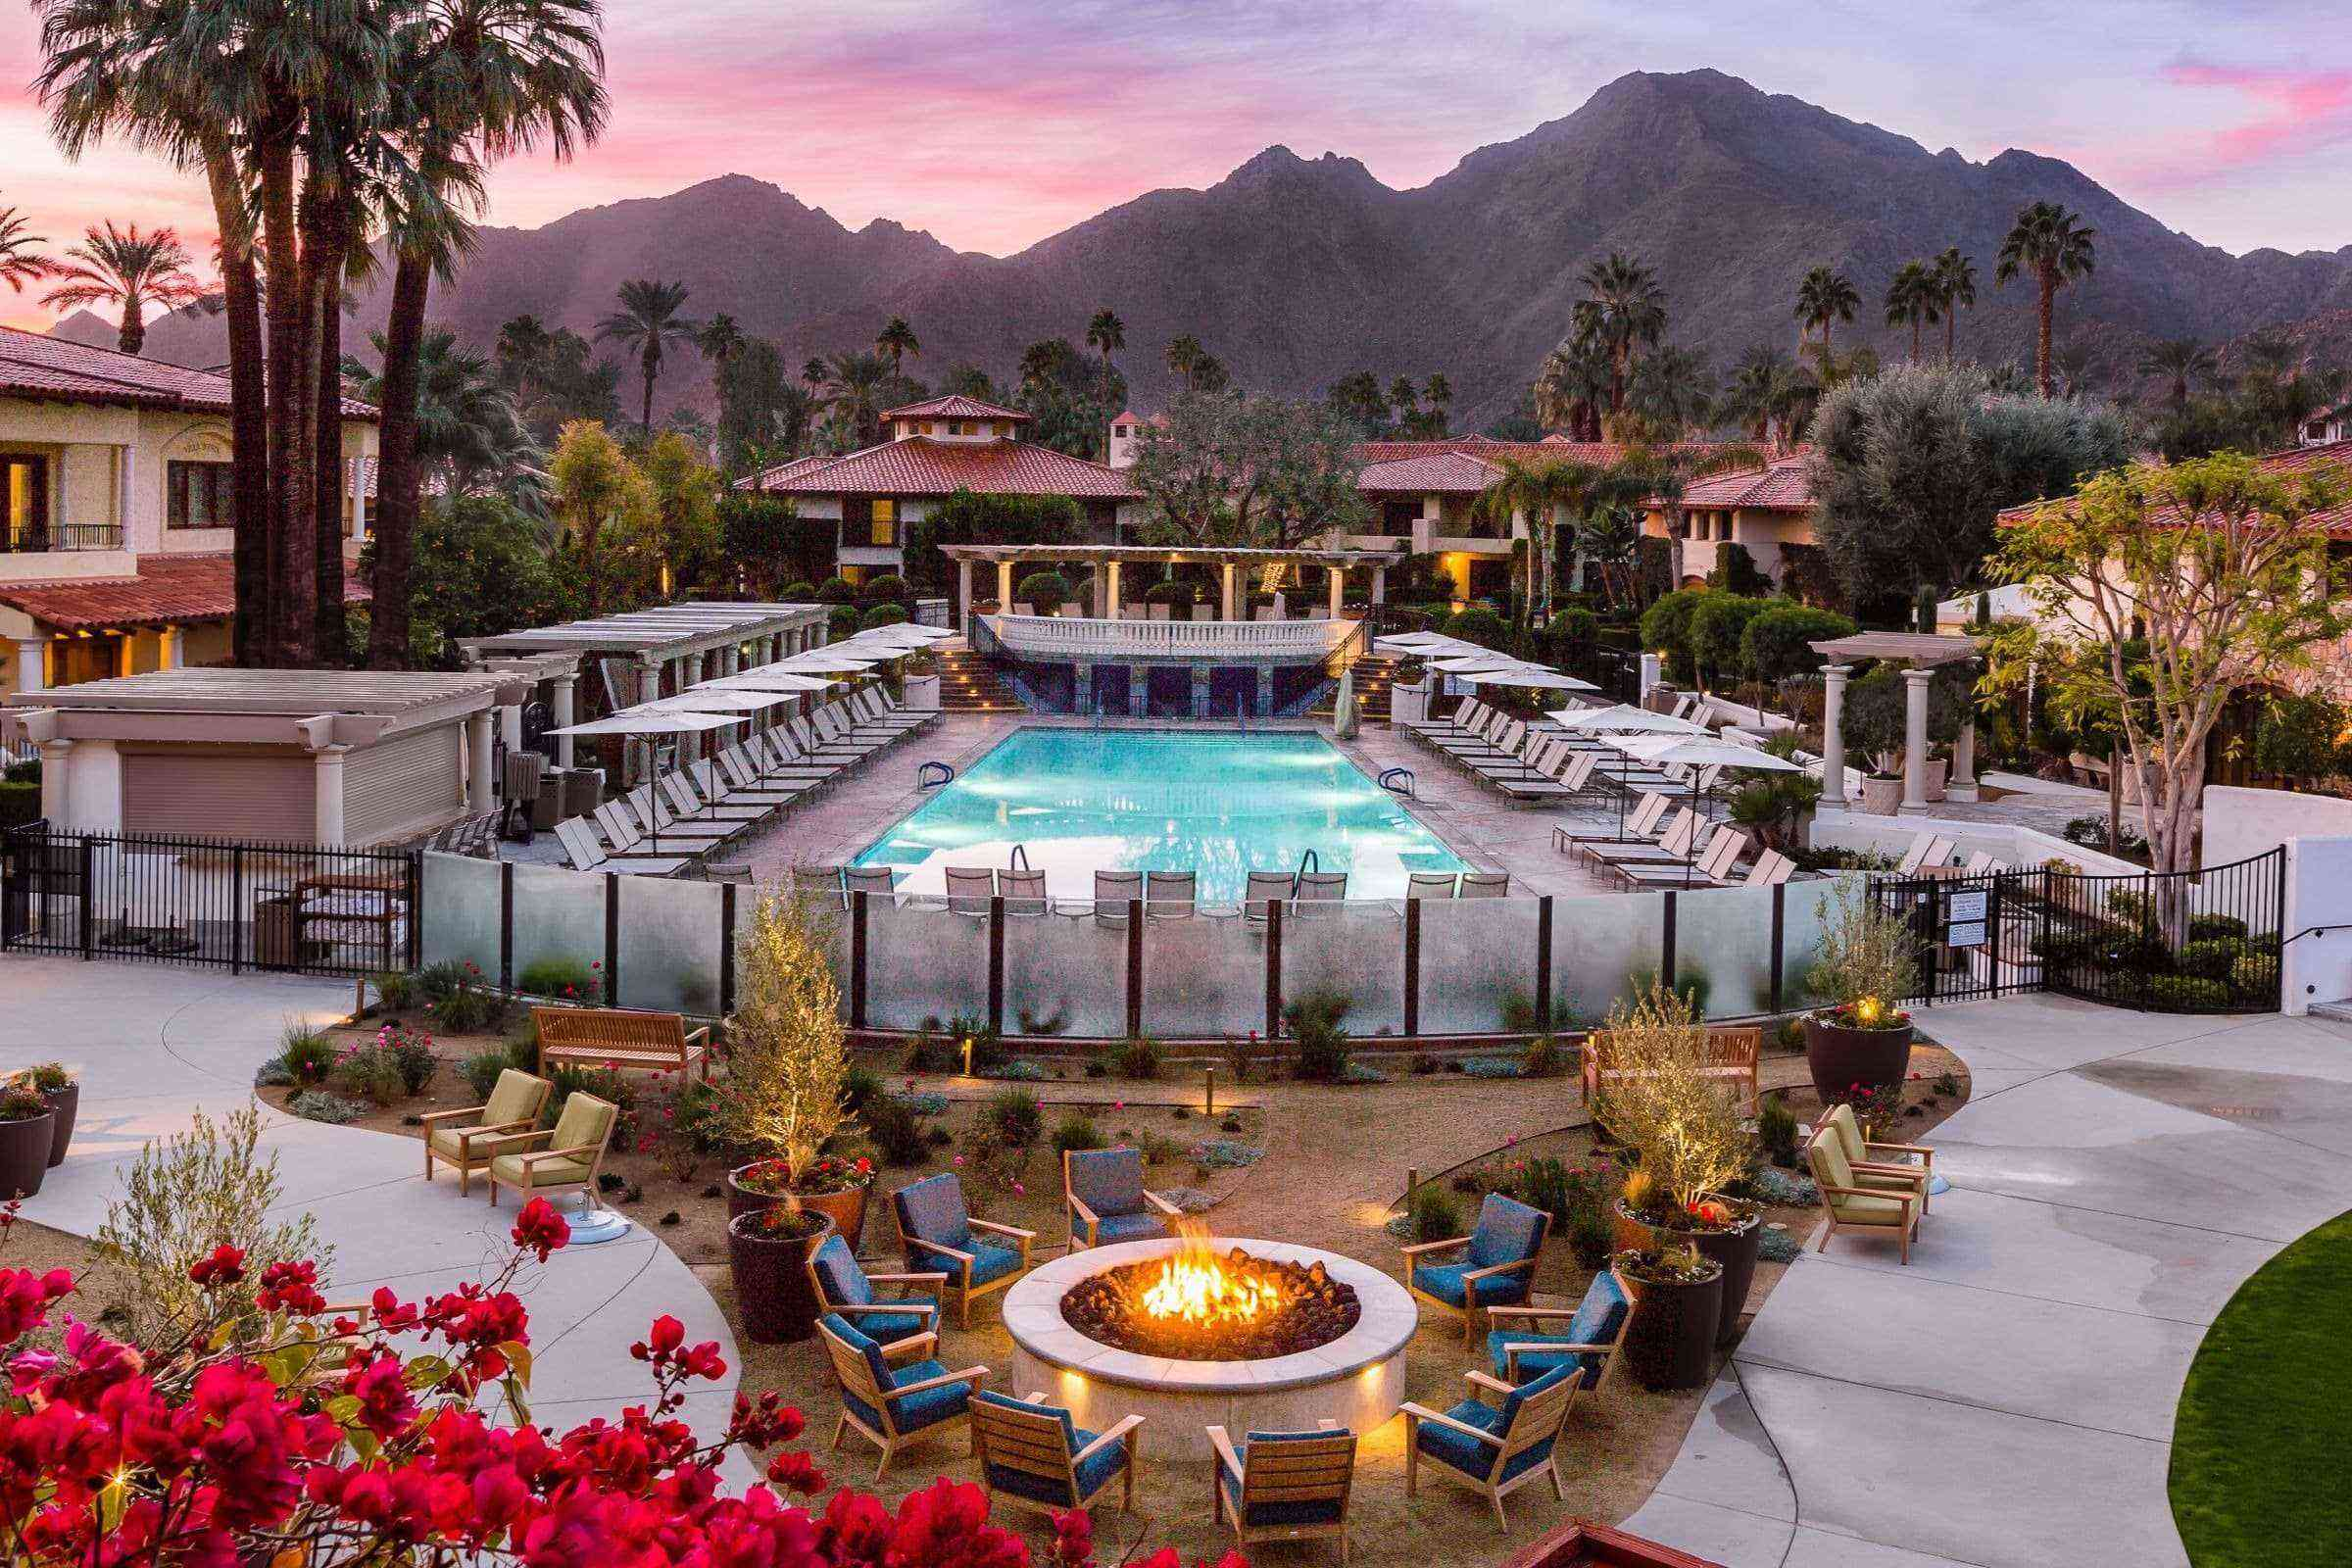 Pool With A View 10 Scenic Spots To Swim Before Summer Ends Fodors Travel Guide